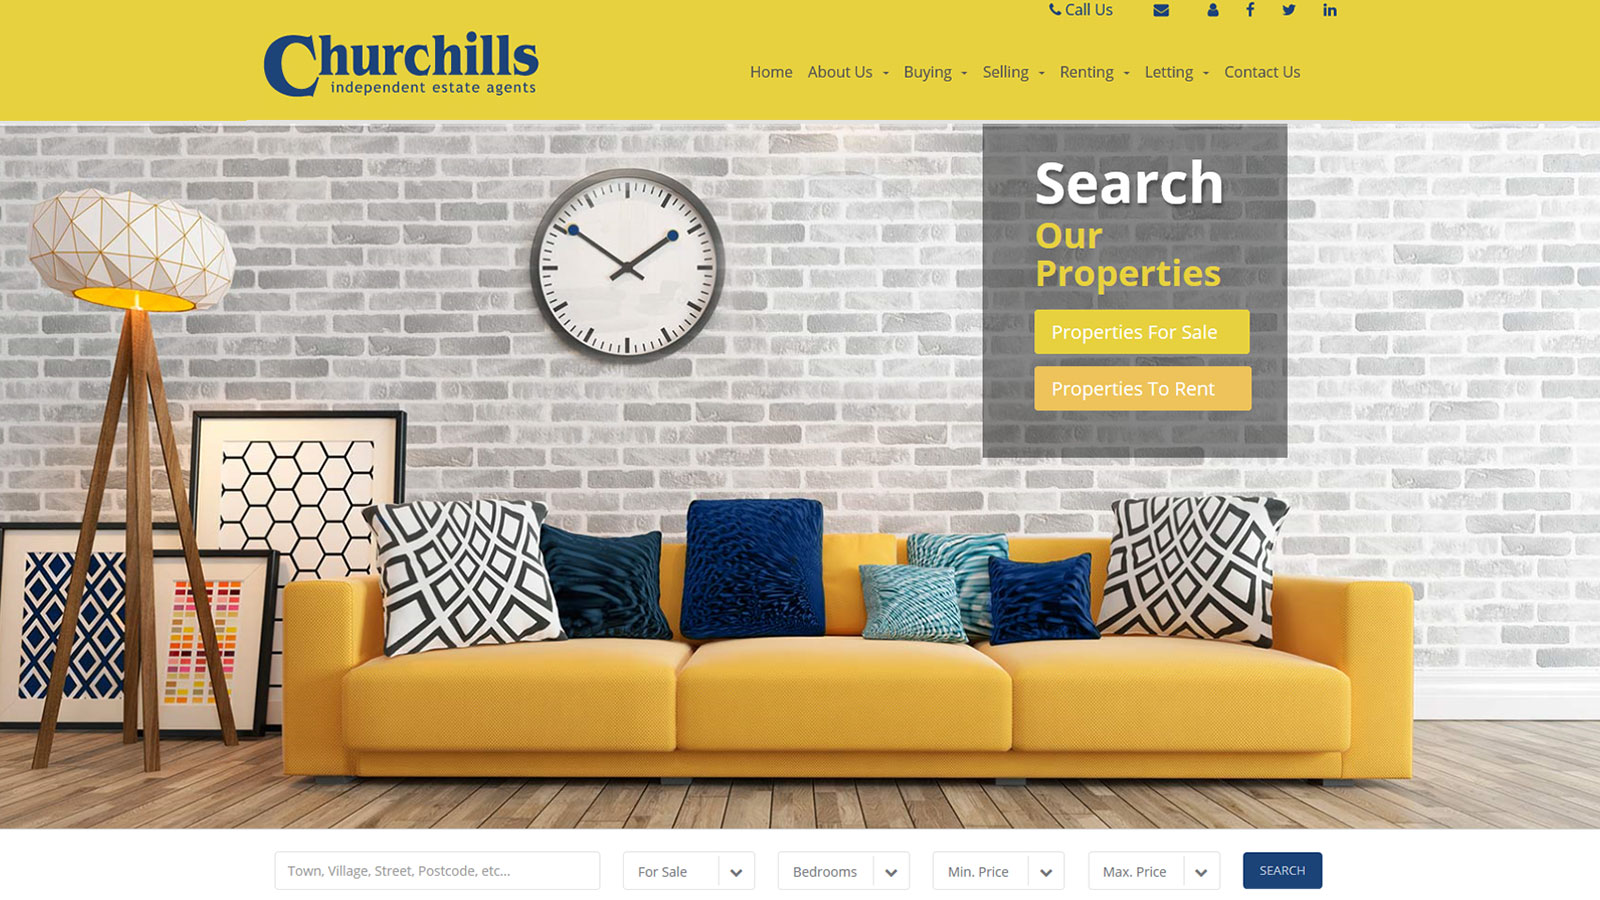 Churchills Independent Estate Agents